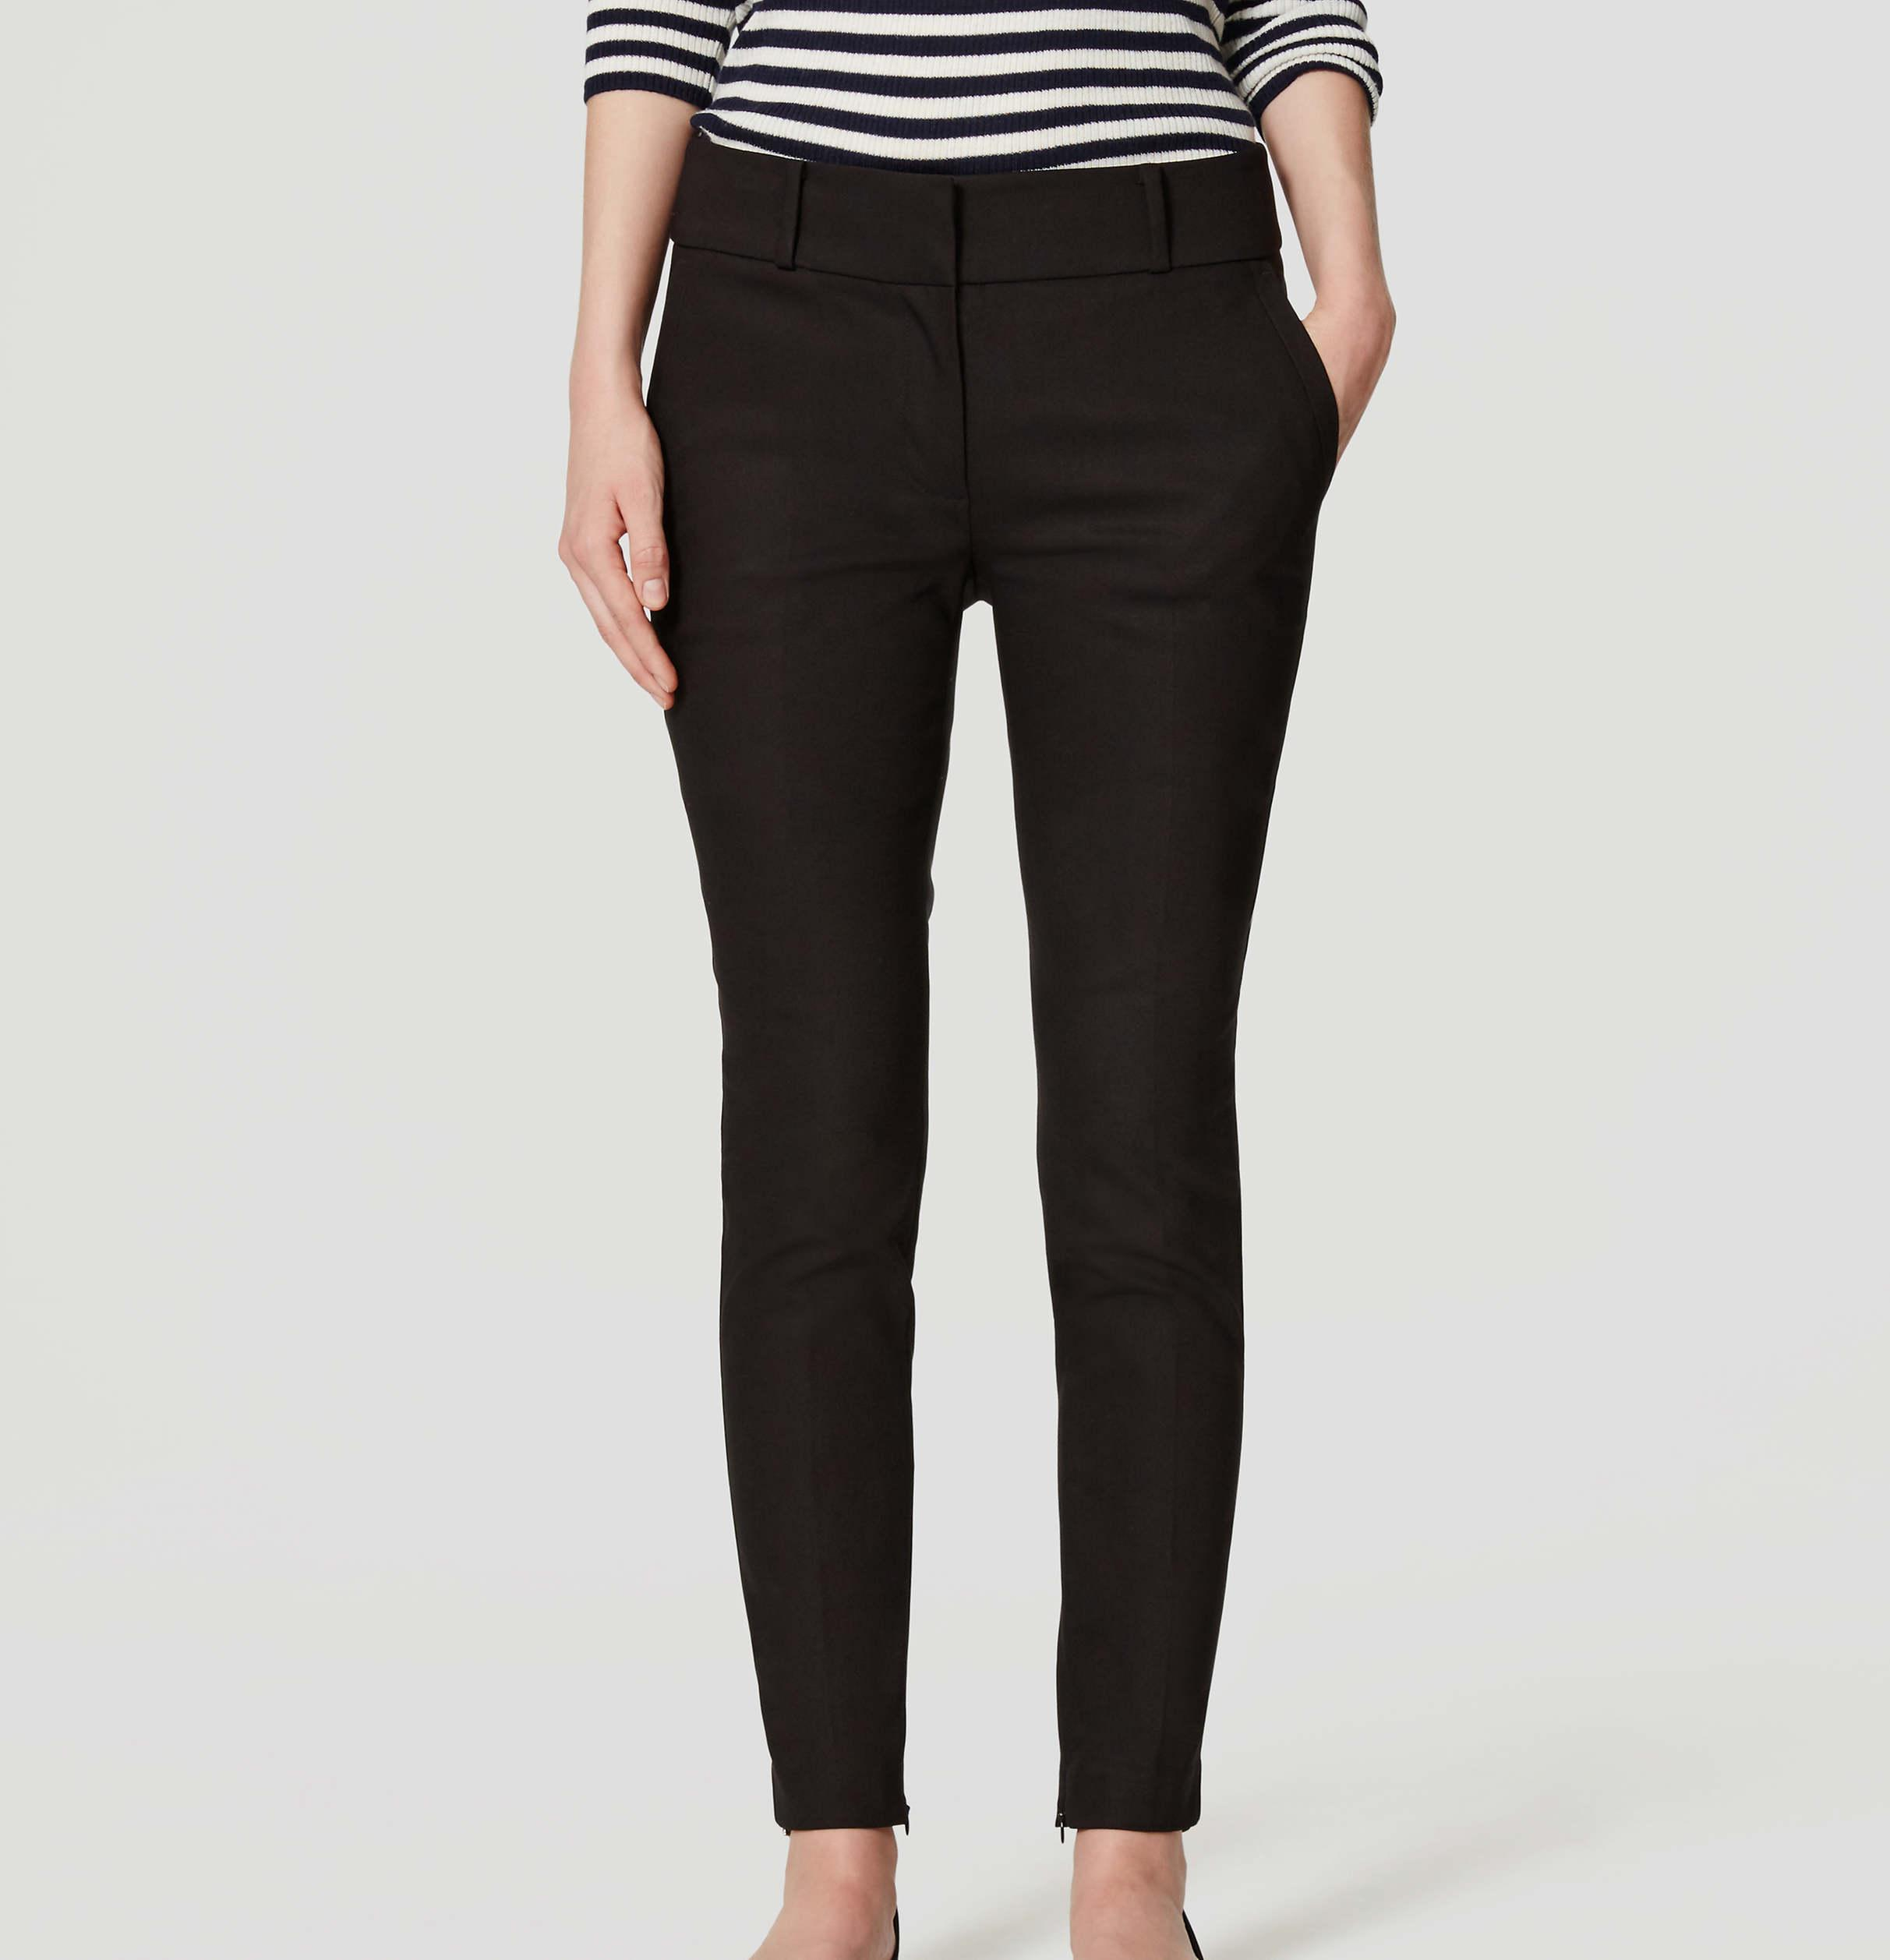 Loft Essential Skinny Ankle Pants